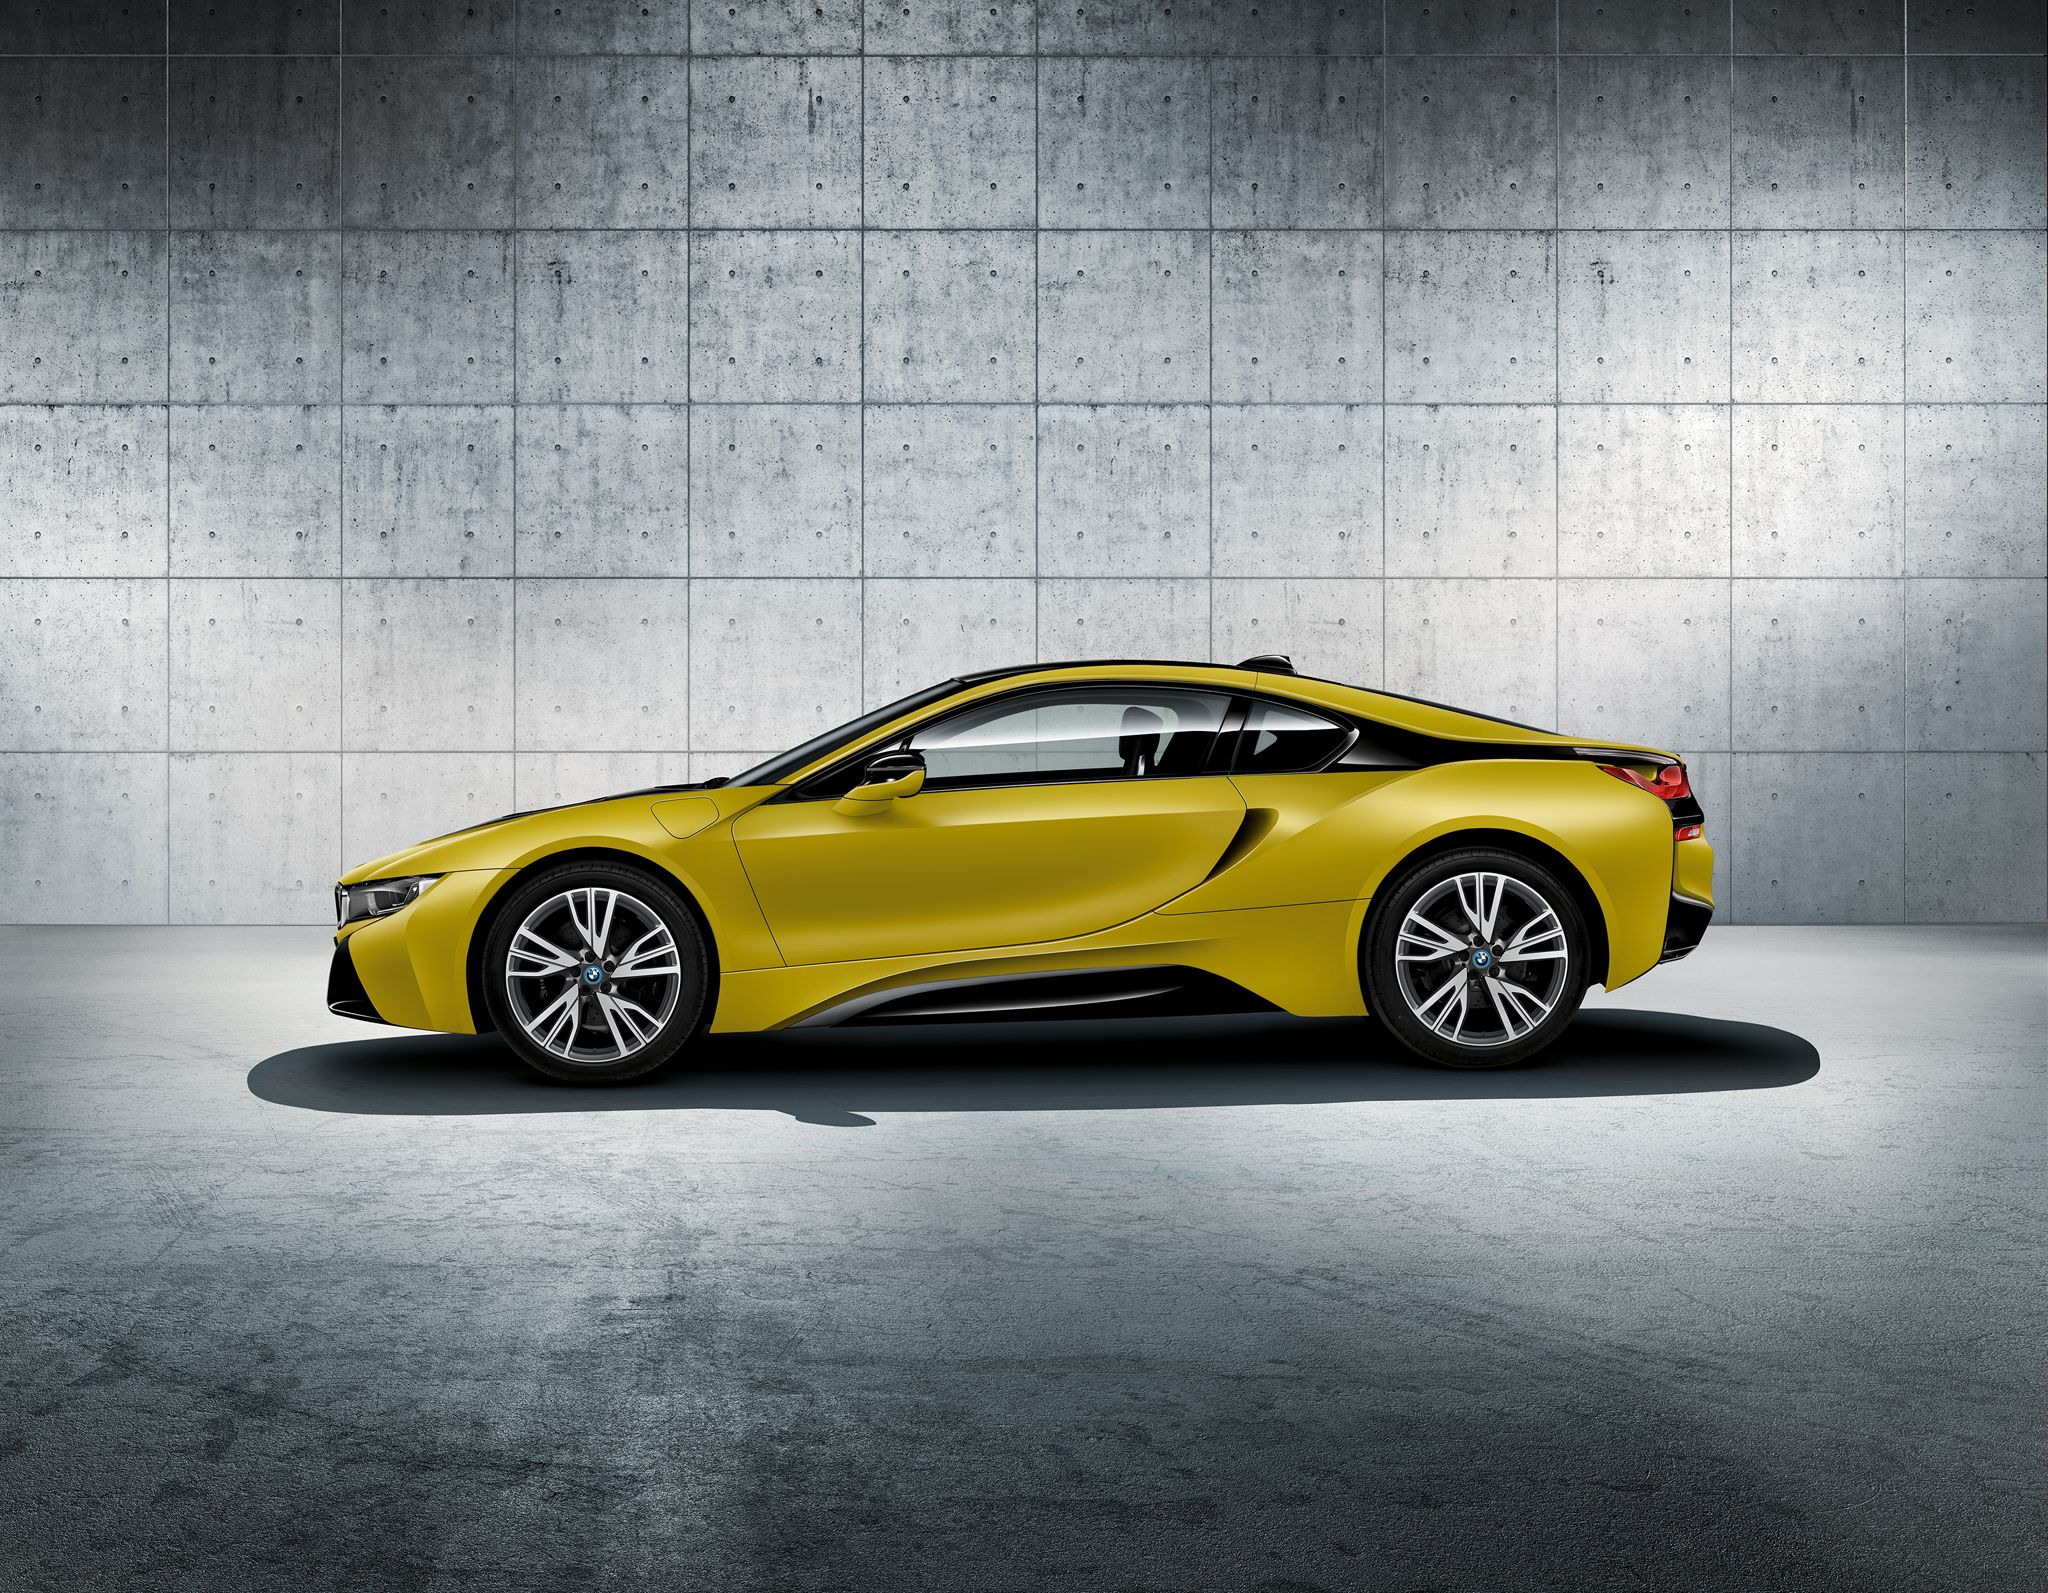 Bmw I8 Coupe Edrive Frozenyellowedition Green City Tuning